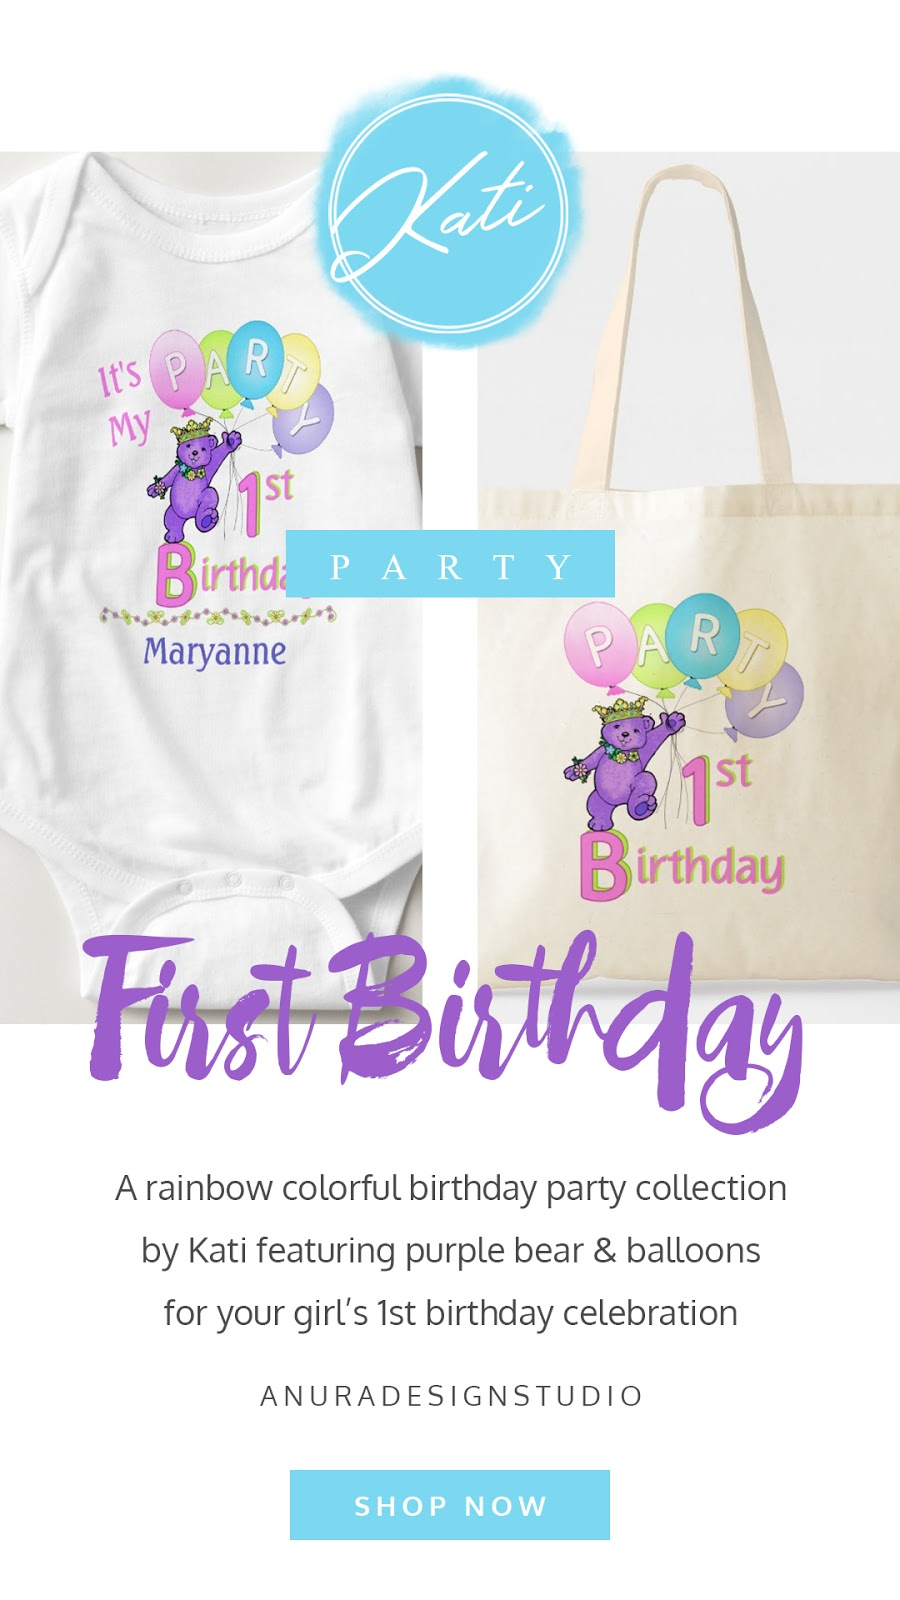 Purple bear and balloons first birthday party collection. Featuring personalized baby apparel, cards, bags, gifts, and party decor. In a confetti pink, sweetness yellow, cotton candy blue, and playful purple color palette.